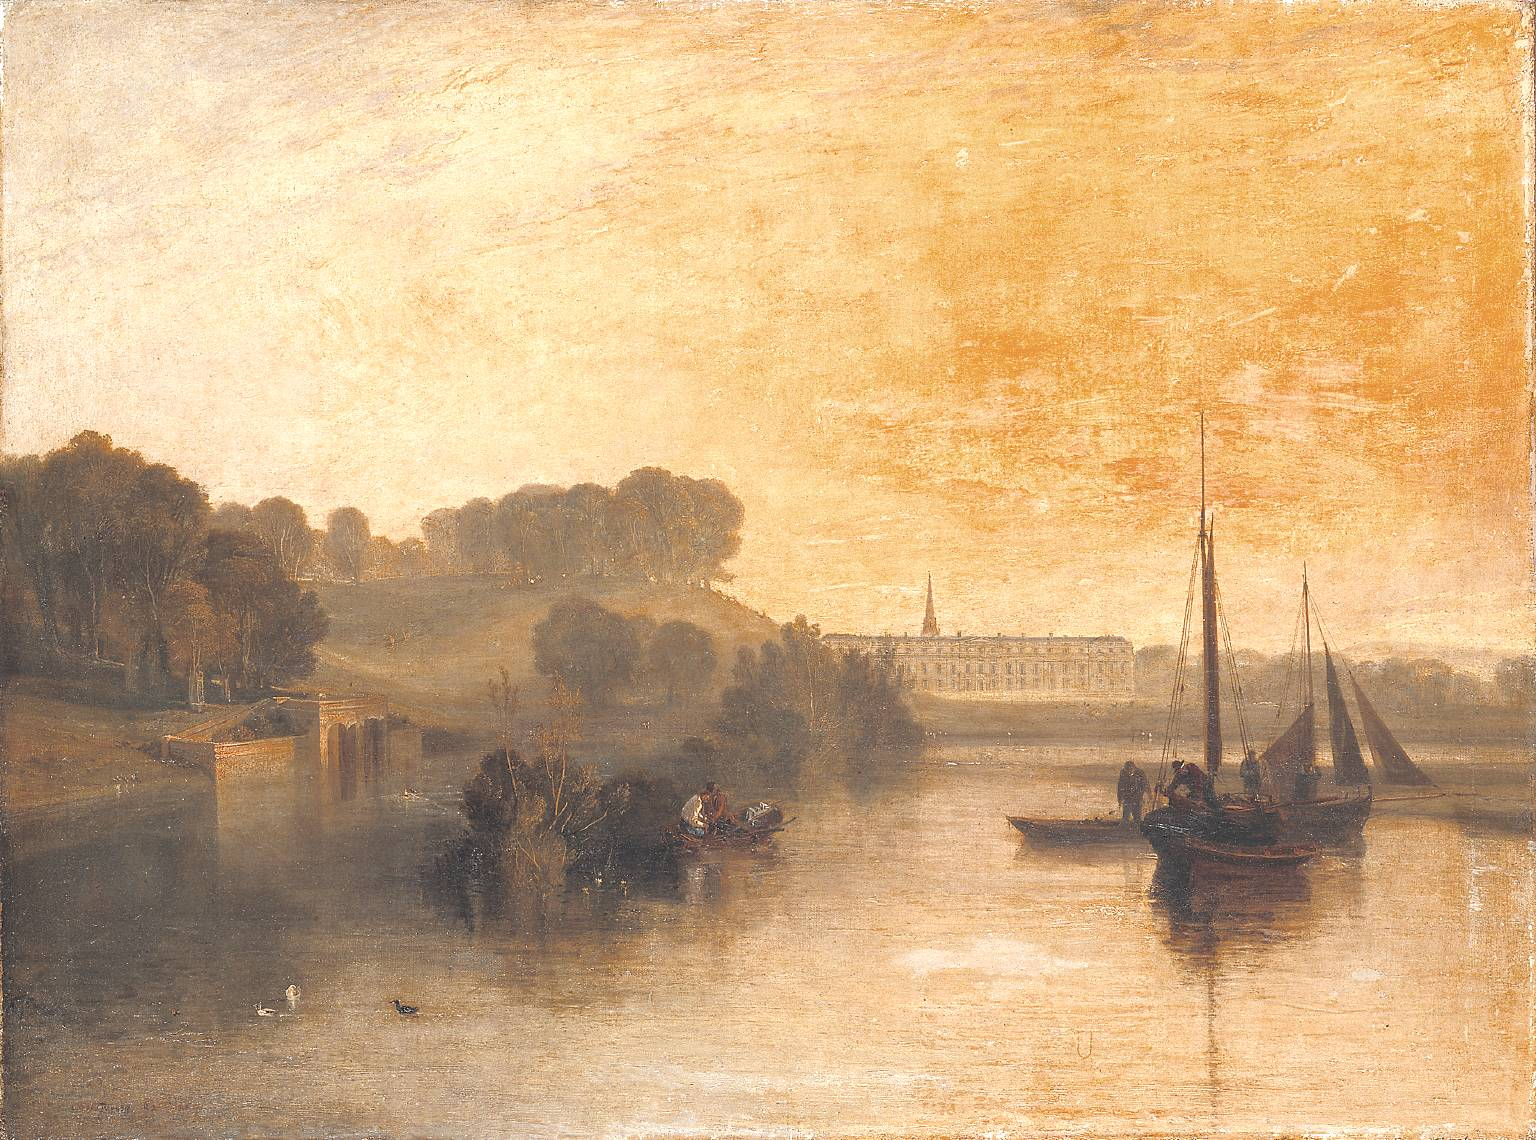 Petworth, Sussex, the Seat of the Earl of Egremont: Dewy Morning exhibited 1810 by Joseph Mallord William Turner 1775-1851